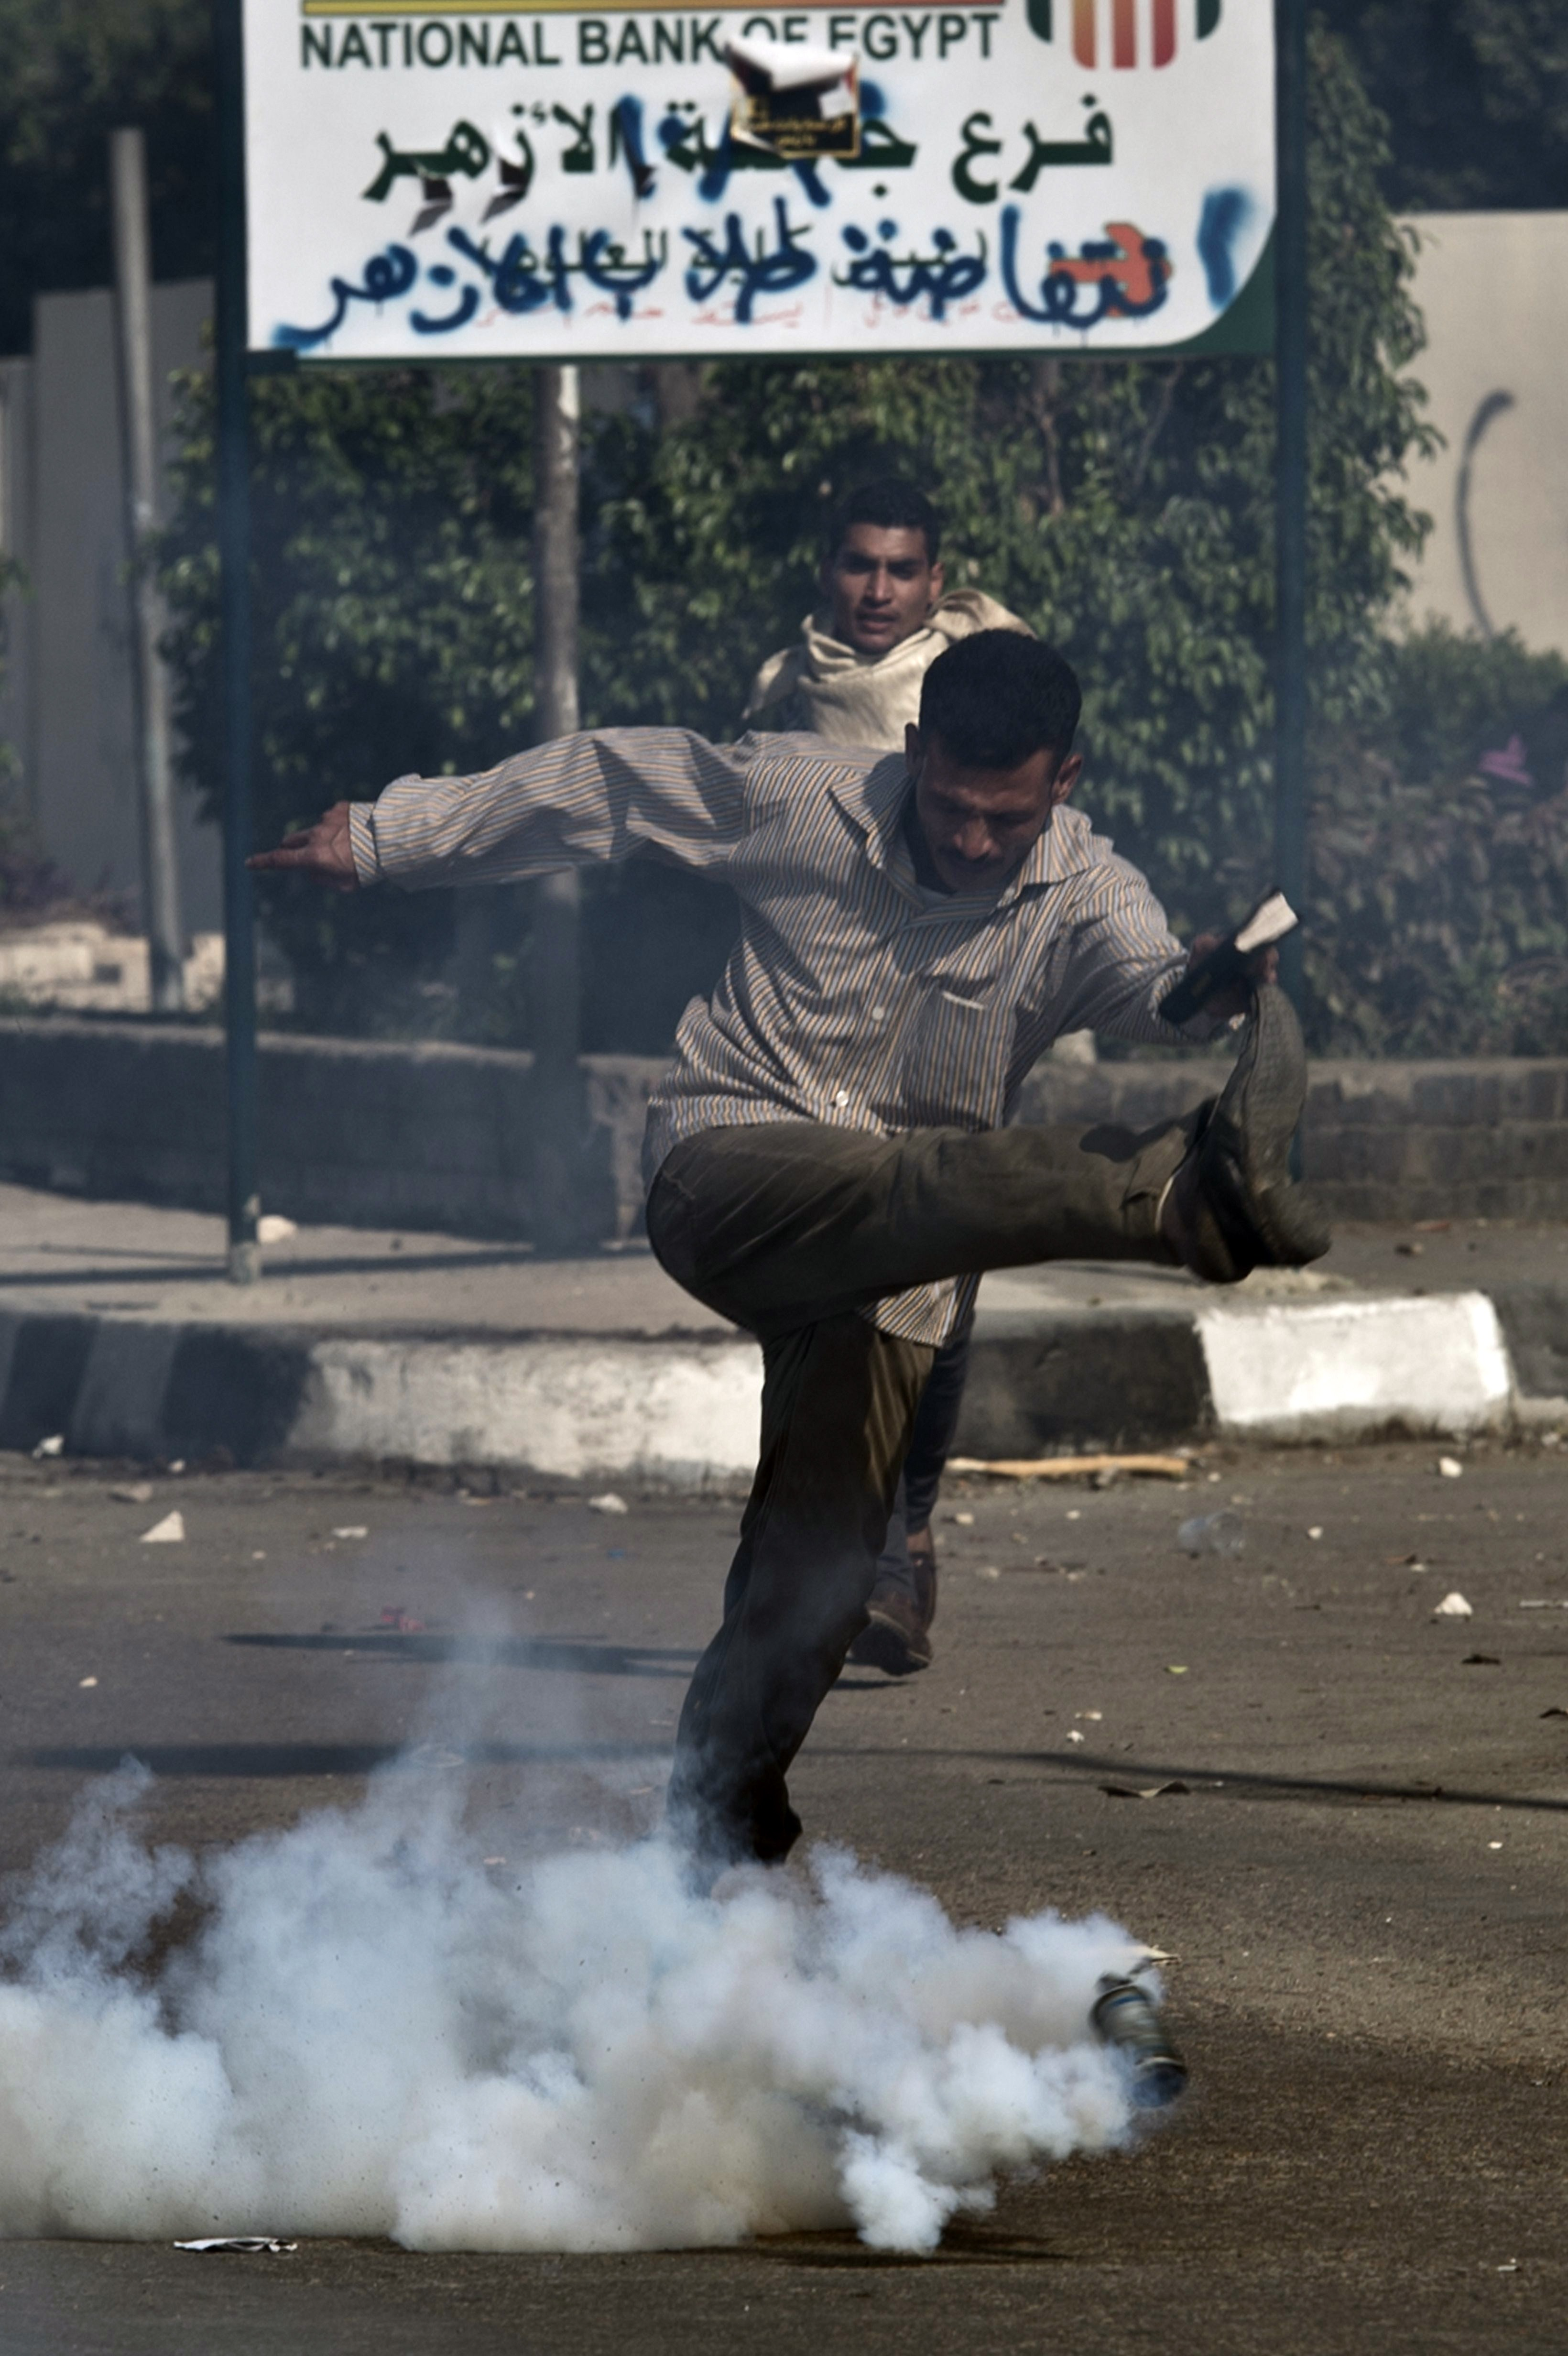 An Egyptian student of al-Azhar university kicks a tear gas canister fired by riot police during clashes outside their university campus in Cairo on October 20, 2013 following an anti-army protest. (AFP PHOTO / KHALED DESOUKI)